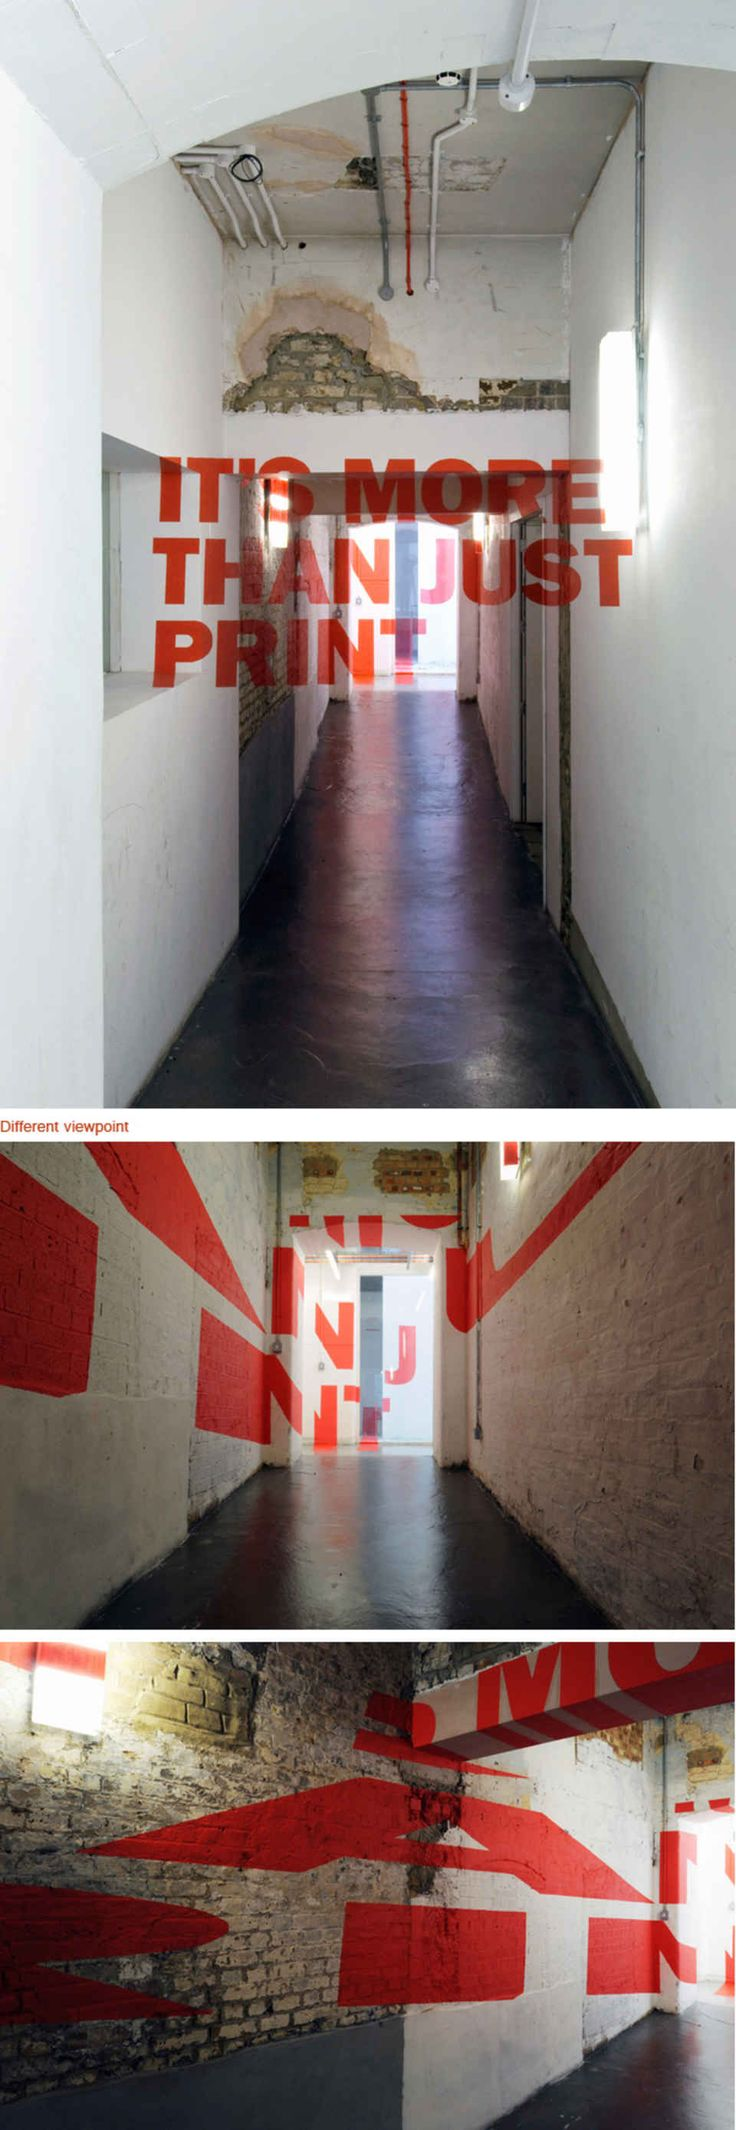 20 Awesome Optical Illusions Using Typography https://it.pinterest.com/repocor/